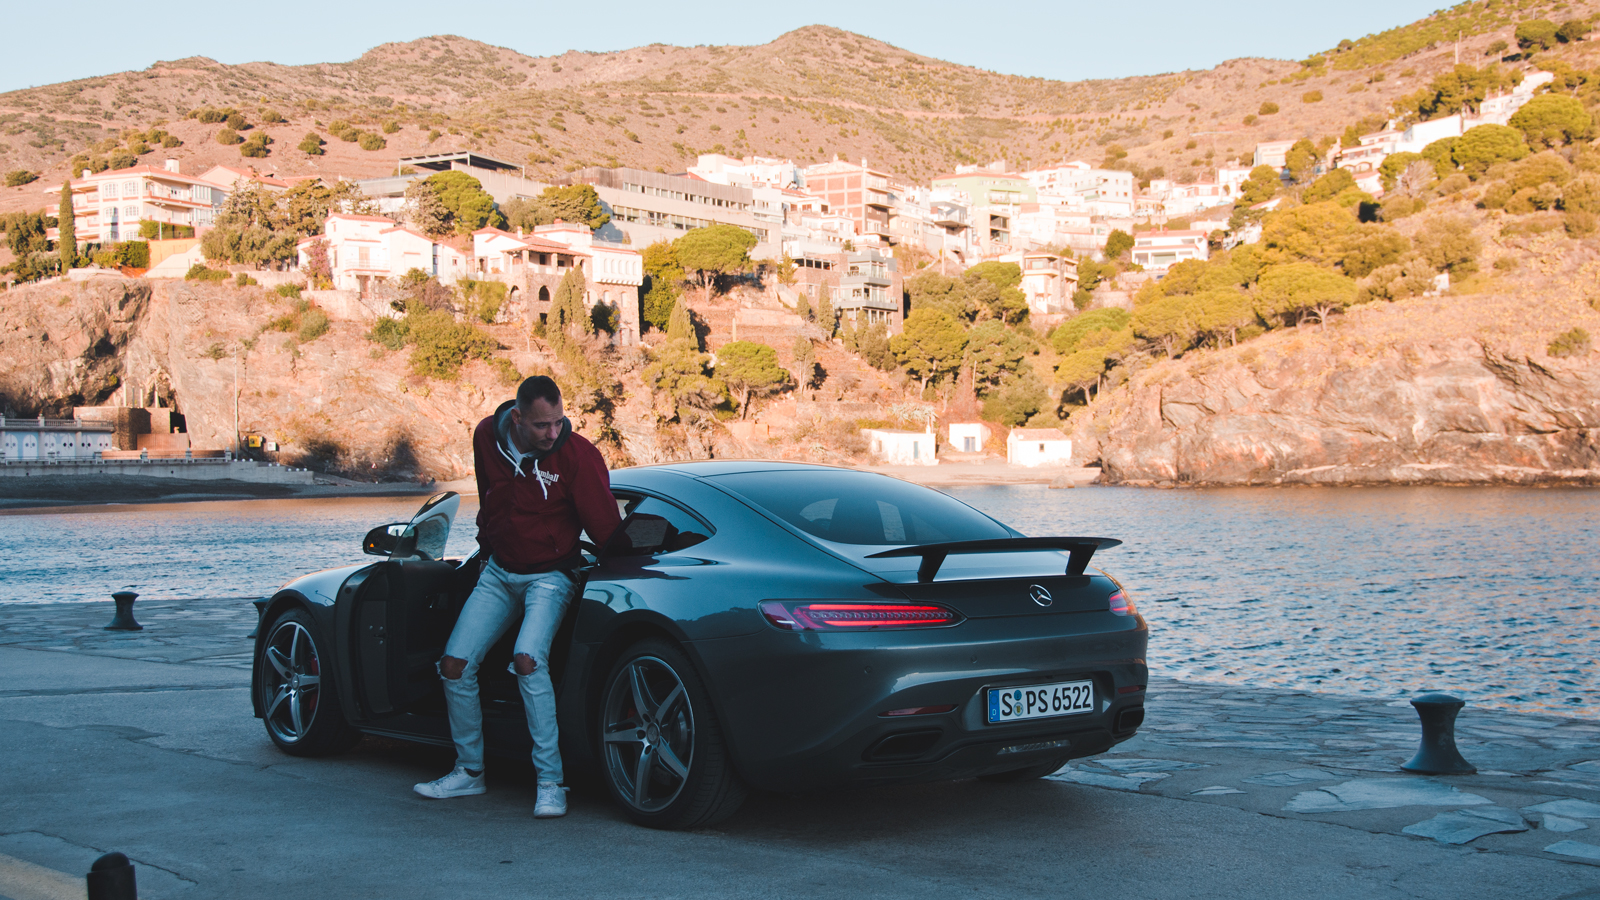 Behind the Scenes Mercedes-AMG GT S Roadtrip Thomas van Rooij Photography